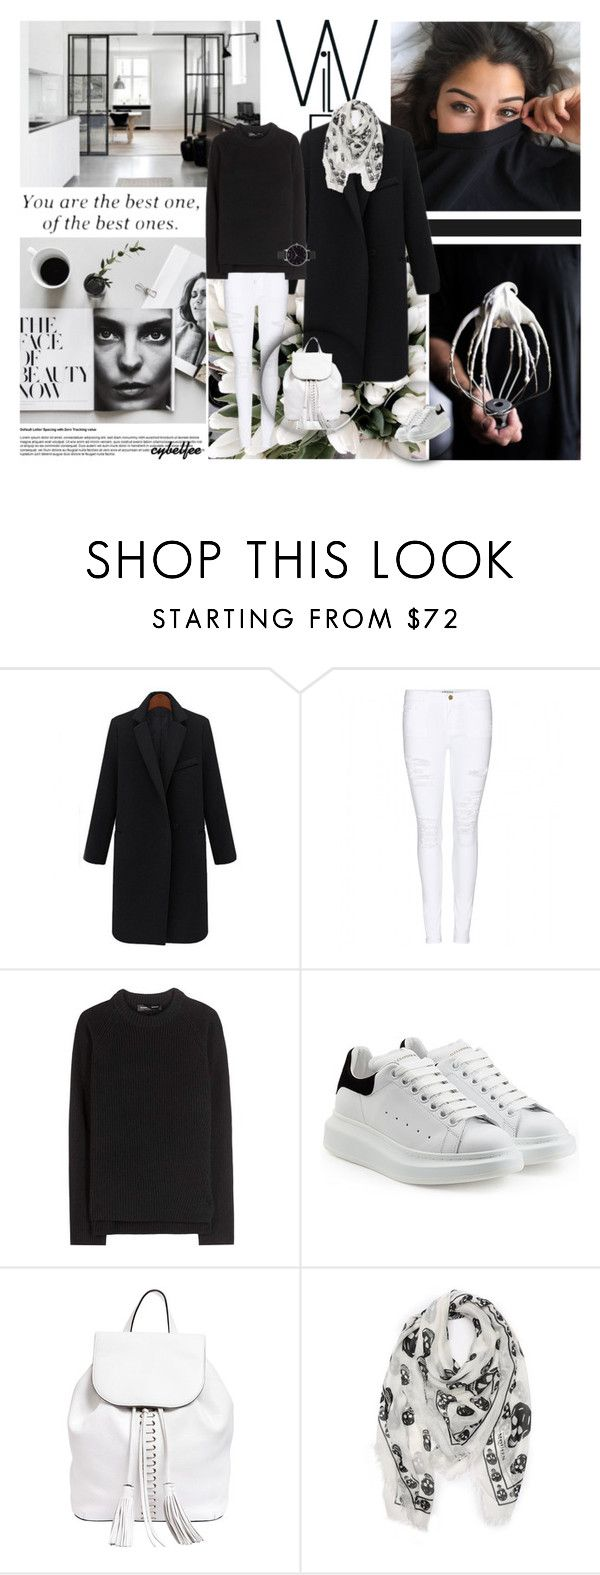 """""""You are the best one, of the best ones"""" by cybelfee ❤ liked on Polyvore featuring Frame Denim, Proenza Schouler, Alexander McQueen, Rebecca Minkoff, Olivia Burton, women's clothing, women's fashion, women, female and woman"""